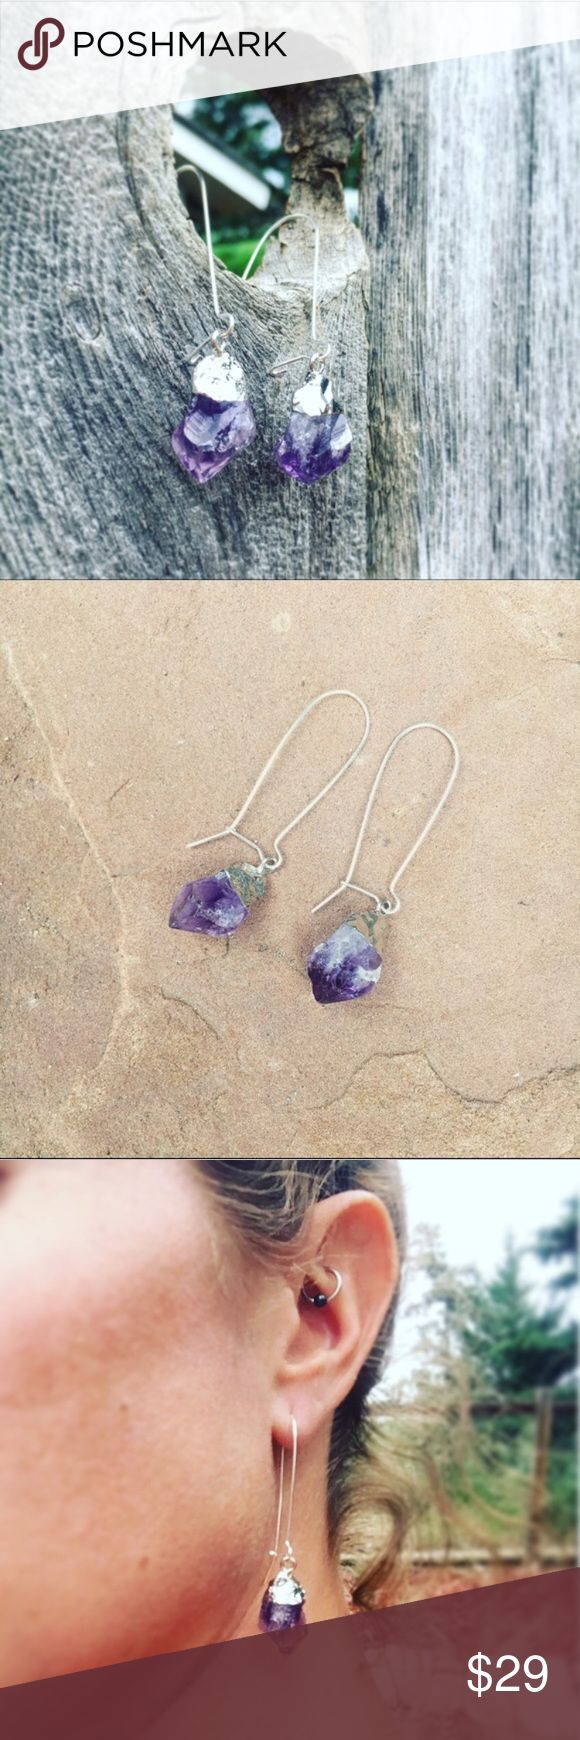 "Wild Raw Amethyst Dangle Earrings Brand new and made with love in Colorado! Gorgeous genuine raw cut purple Amethyst Crystals on silver tone dangle earrings! ""Amethyst is a meditative and calming stone which works in the emotional, spiritual, and physical planes to promote calm, balance, and peace. Used since ancient times to eliminate addiction and impatience."" 💜 Amethyst stones are roughly .5"" long, Silver tone dangle 2"" long. Alloy free. Healing, trendy and oh so pretty! wildarrow…"